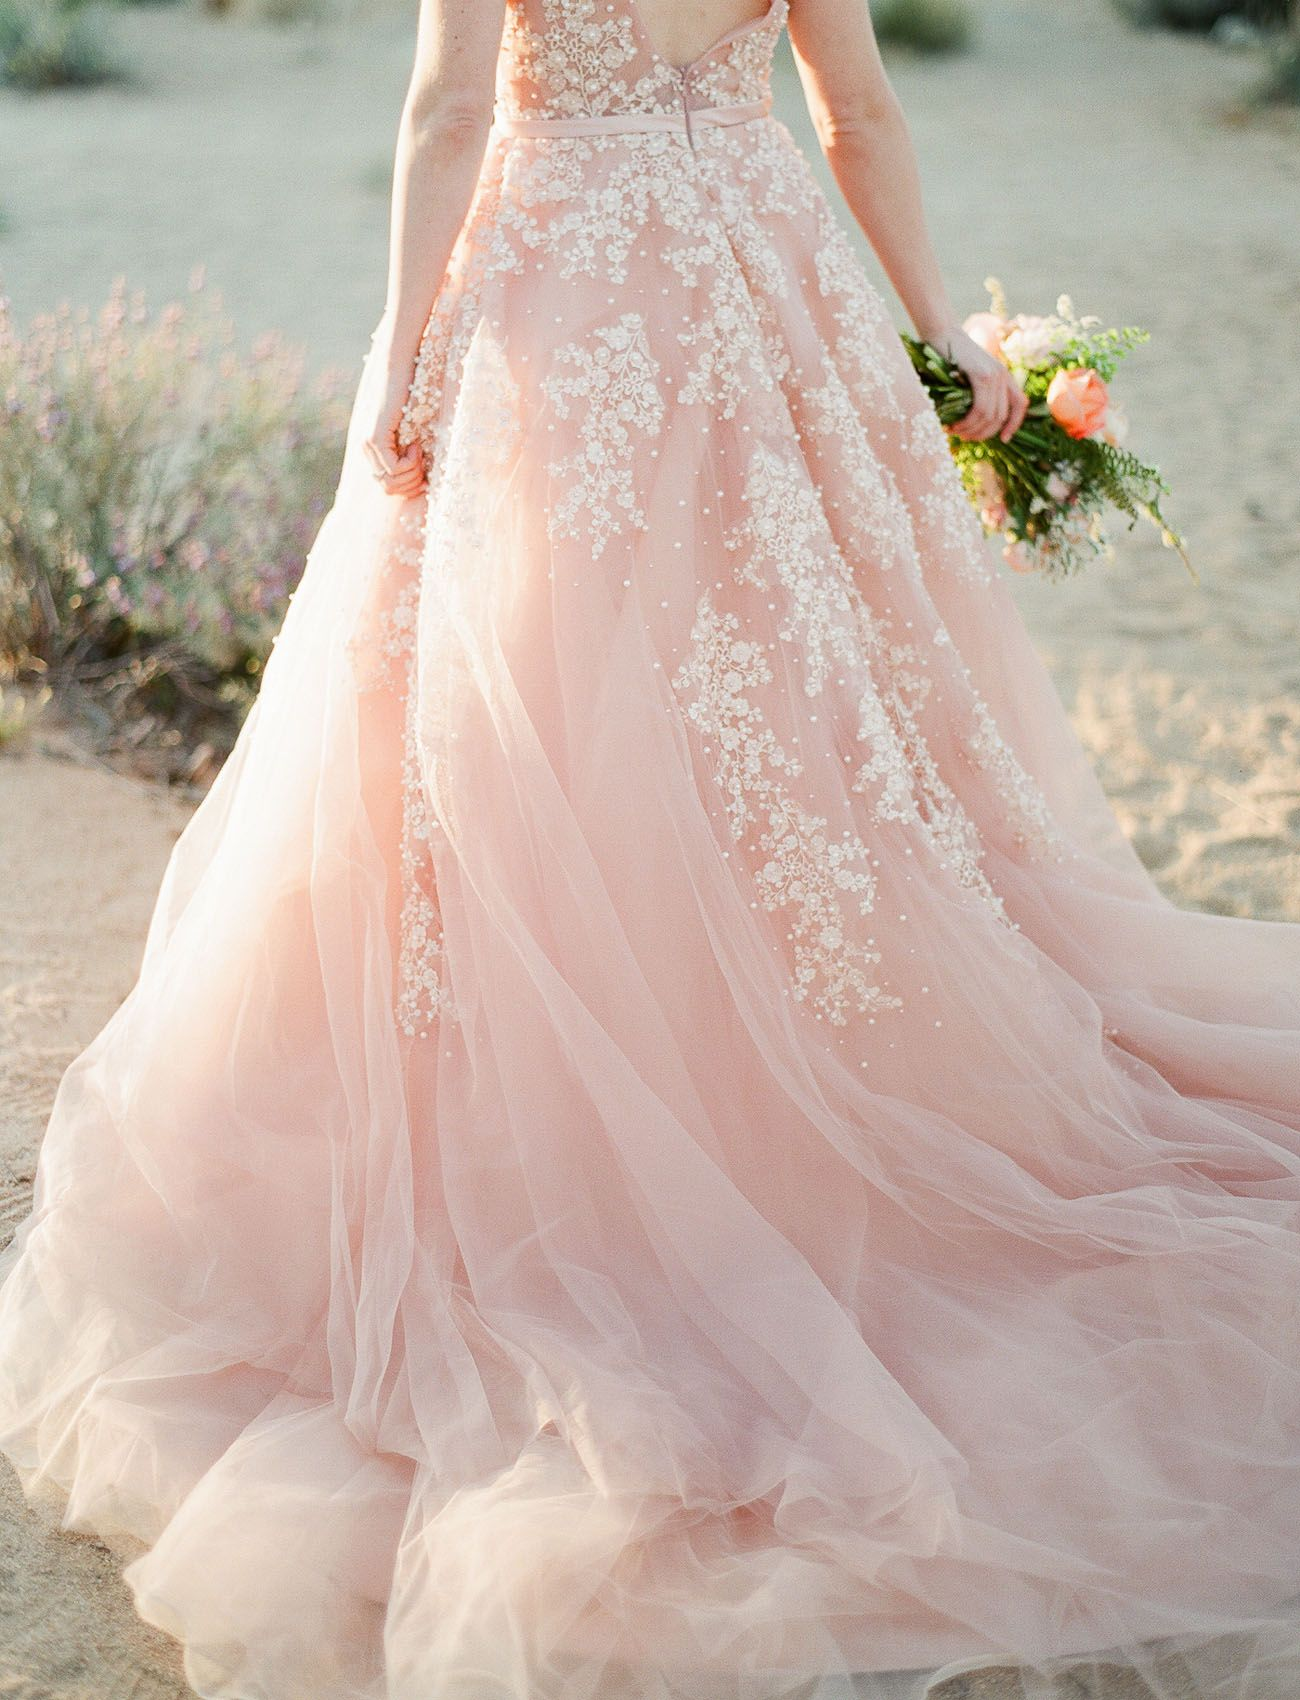 A Dreamy Pink Wedding Dress Captured In Joshua Tree Green Wedding Shoes Blush Pink Wedding Dress Blush Tulle Wedding Dress Wedding Dresses Blush